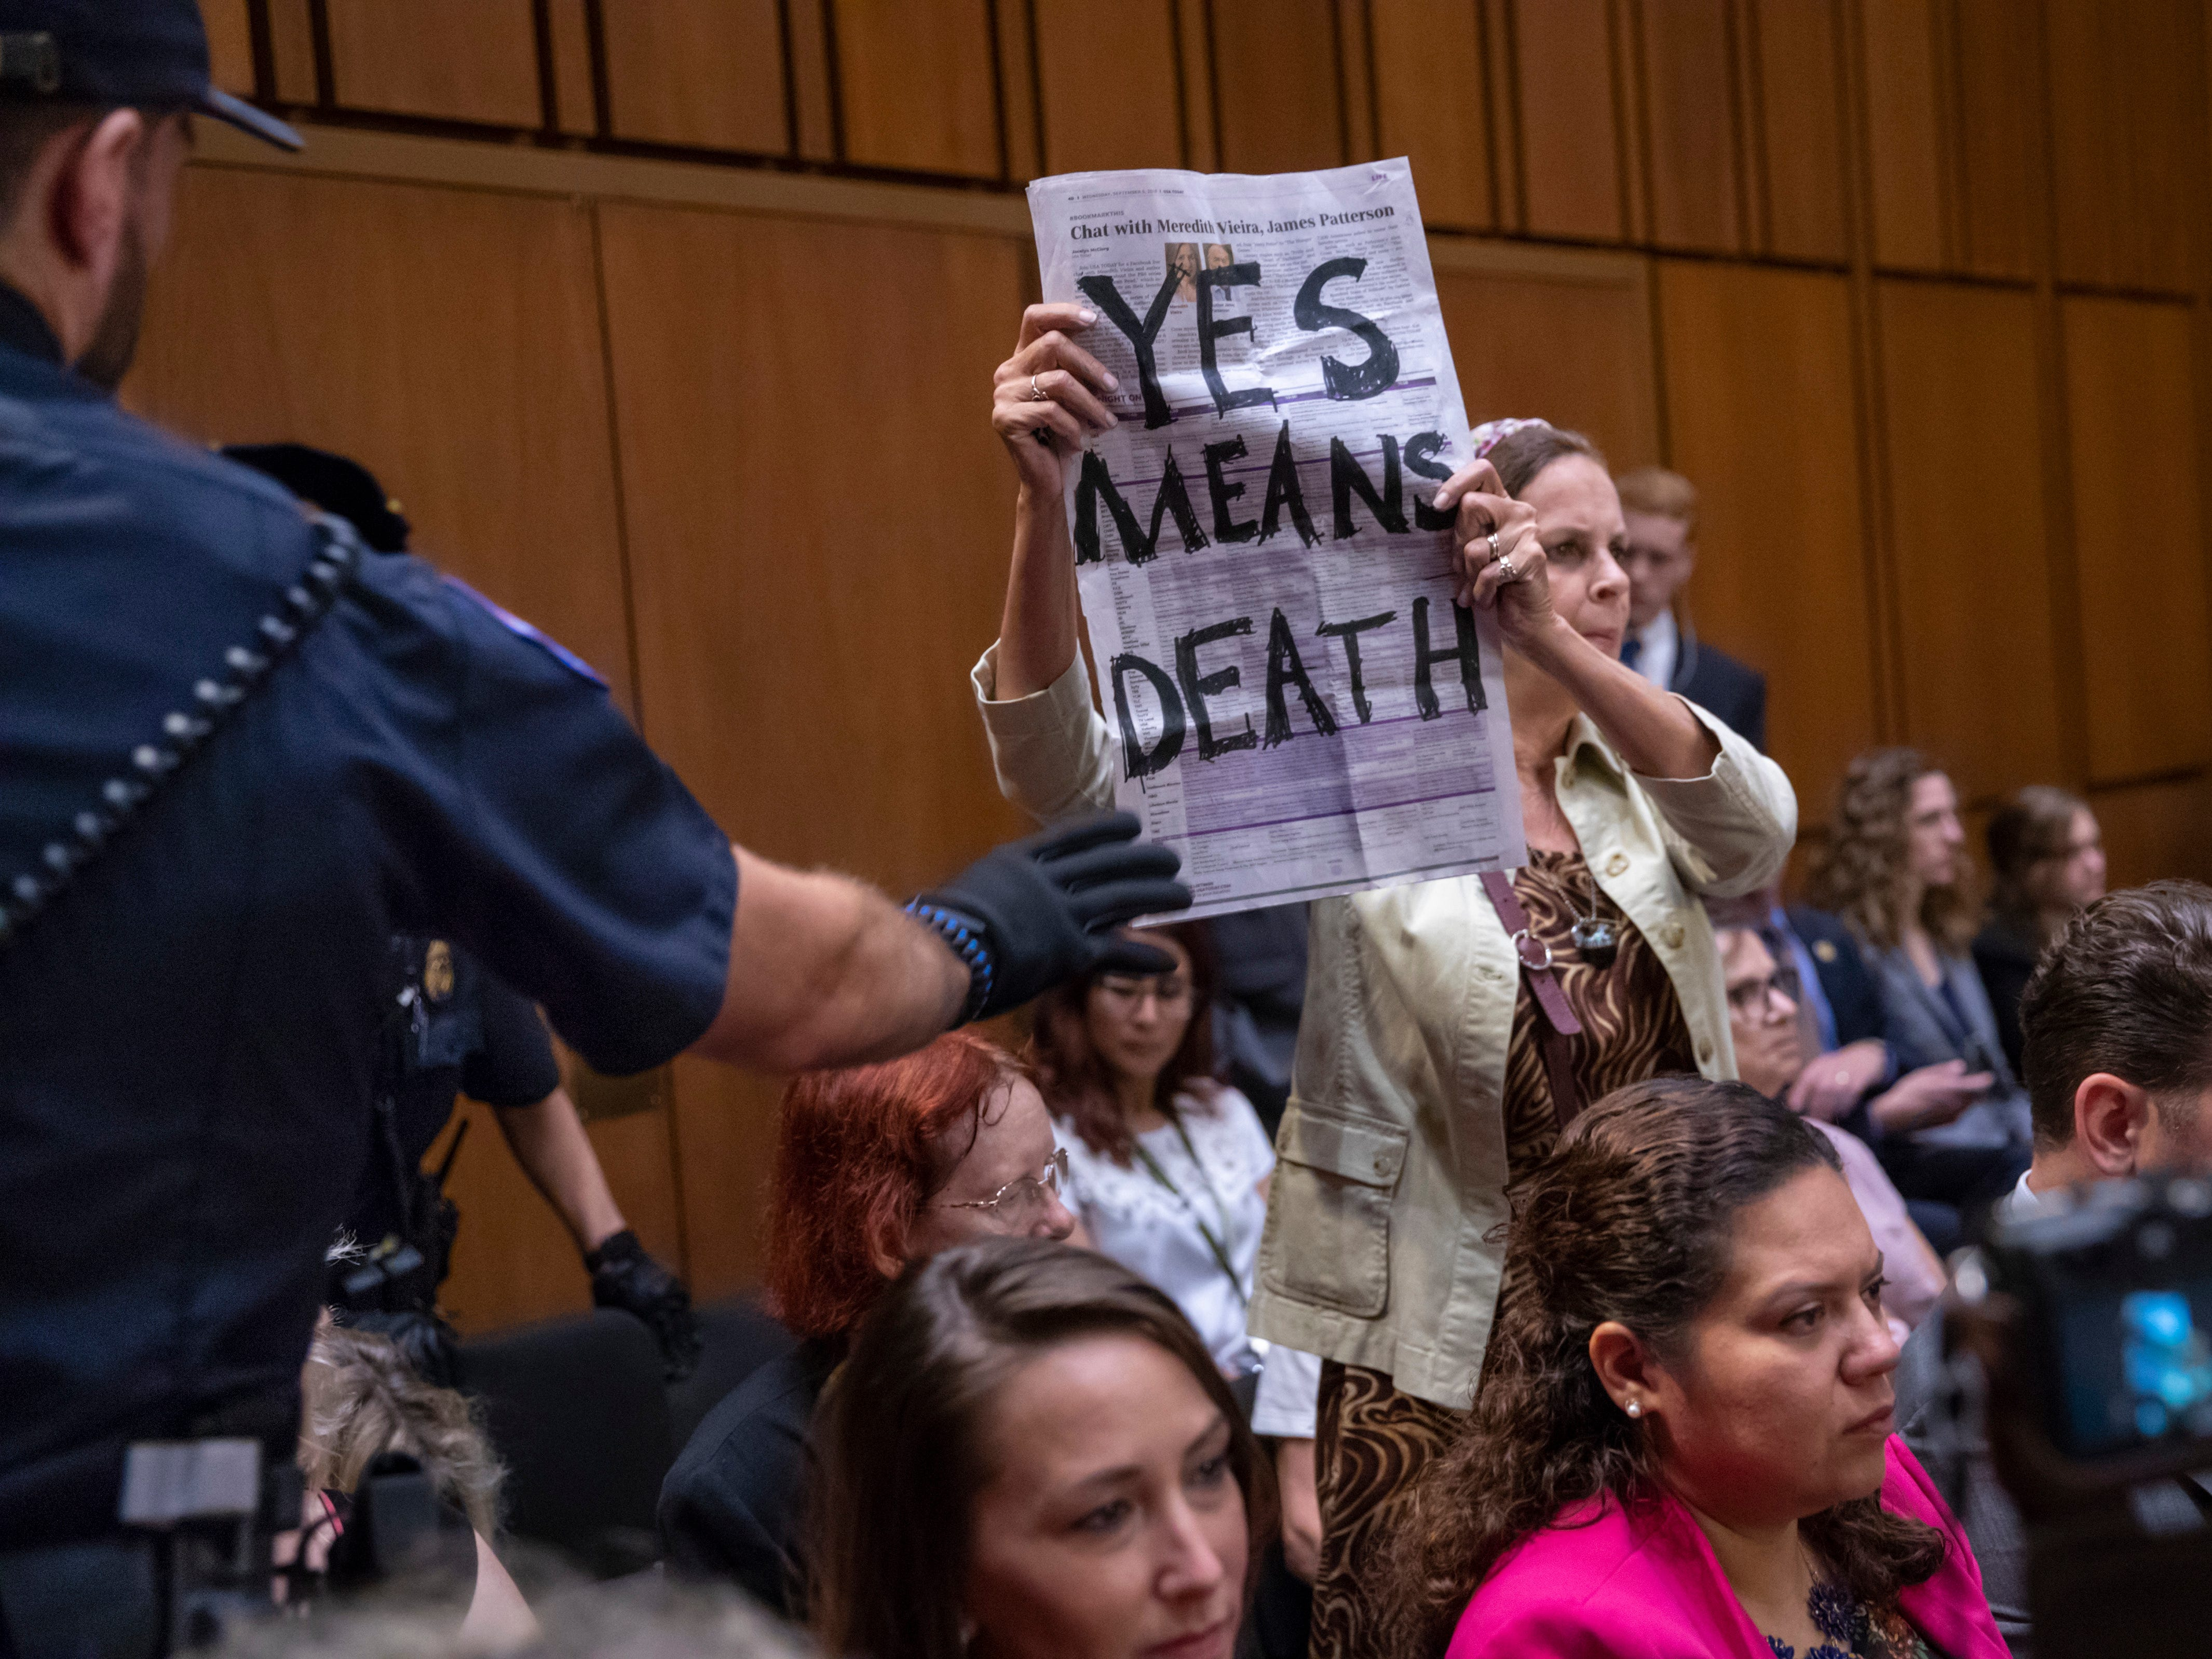 A protester disrupts the proceedings as President Donald Trump's Supreme Court nominee, Brett Kavanaugh, appears before the Senate Judiciary Committee for the second day of his confirmation hearing, on Capitol Hill in Washington, Wednesday, Sept. 5, 2018. (AP Photo/J. Scott Applewhite) ORG XMIT: DCSA103